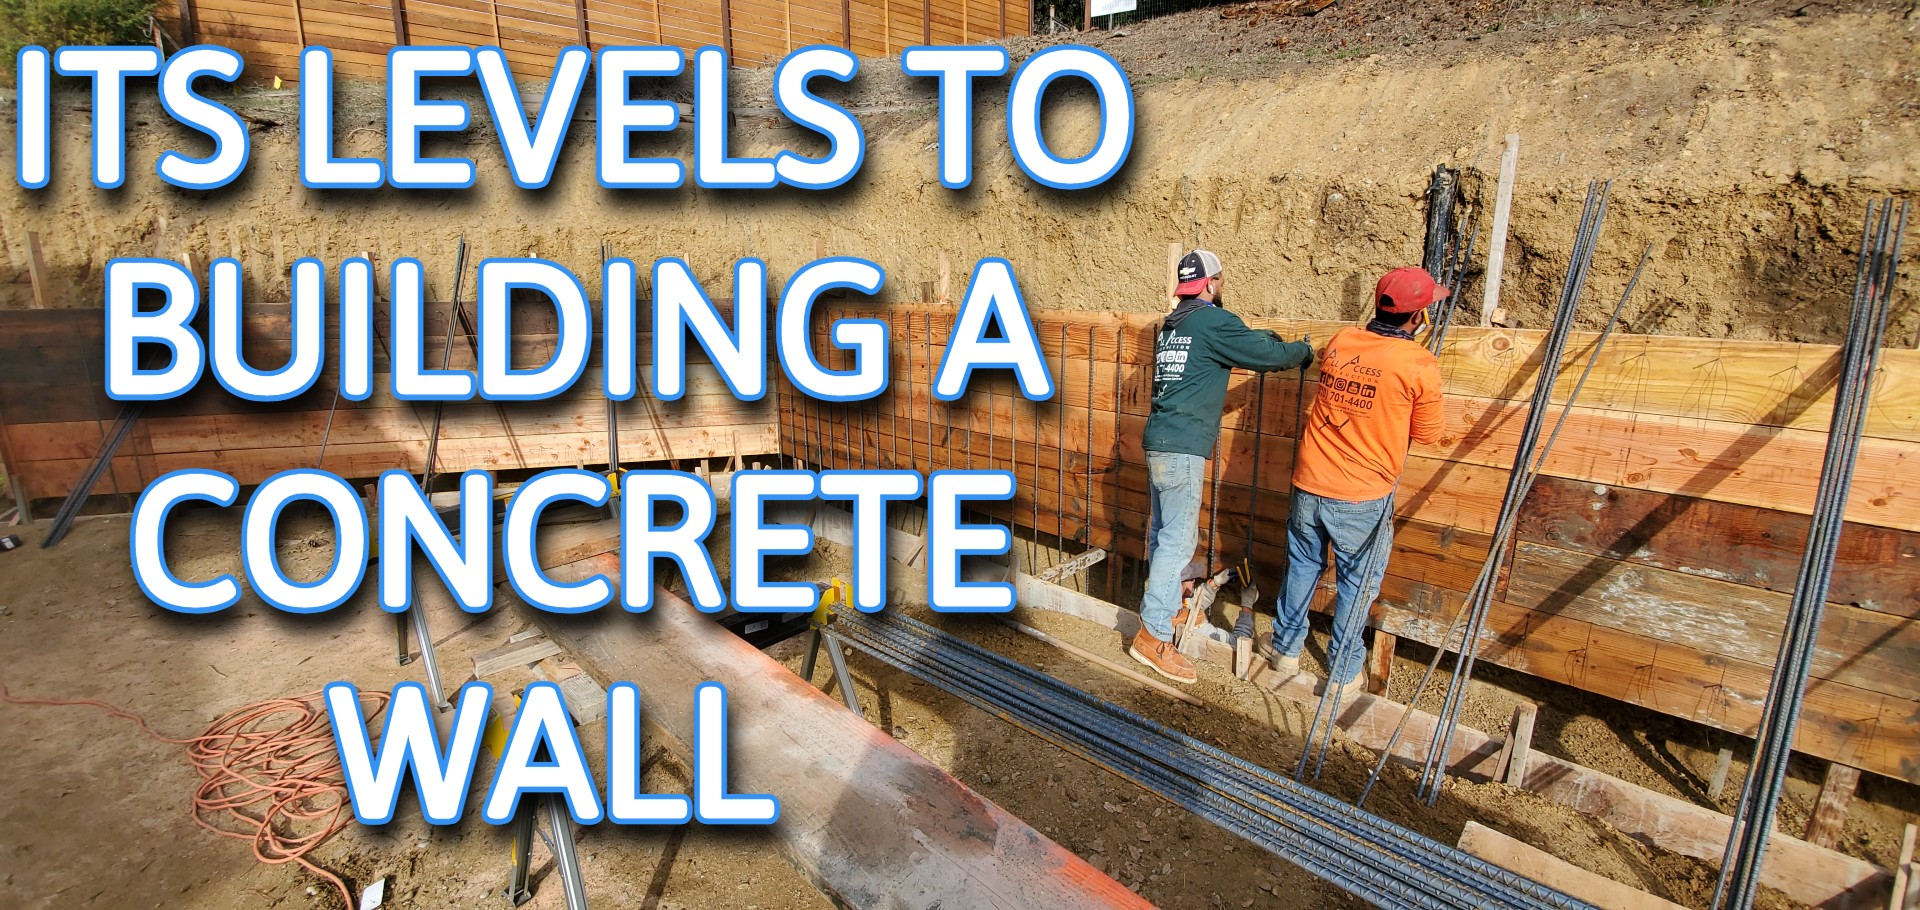 bAY AREA RETAINING CONTRACTOR aLL ACCESS 510-701-4400